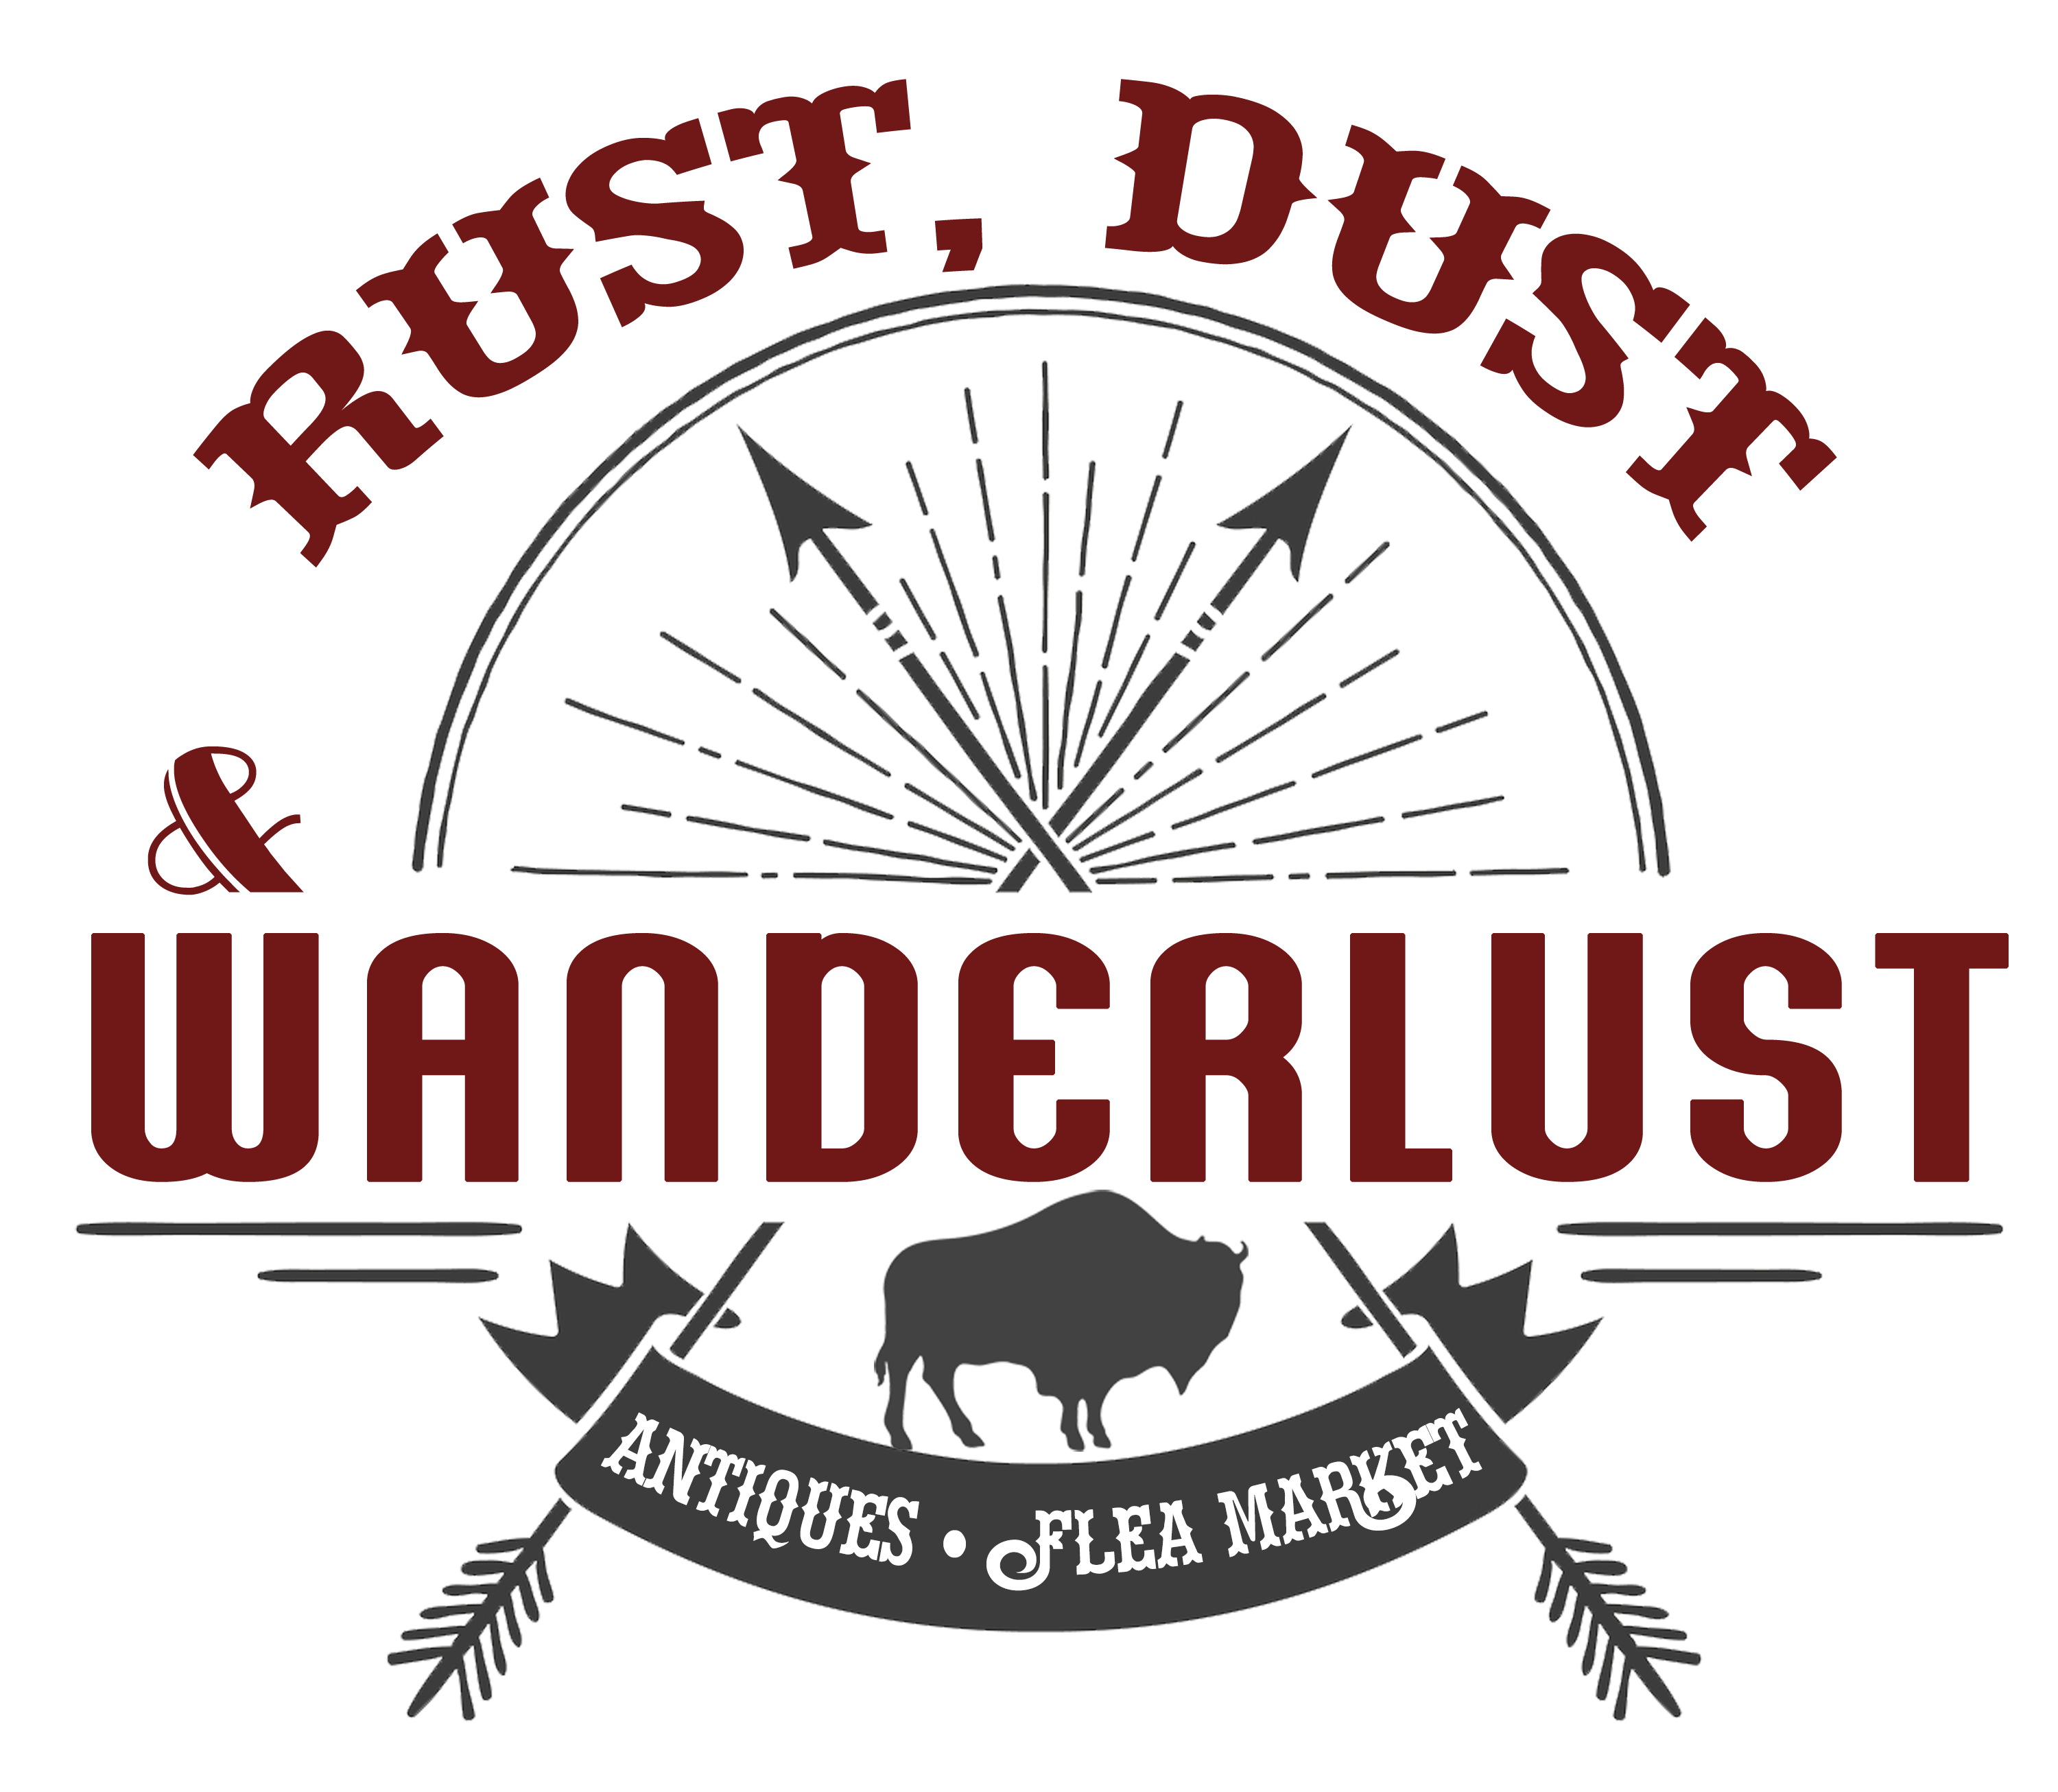 Rust png transparent. Dust wanderlust antiques and